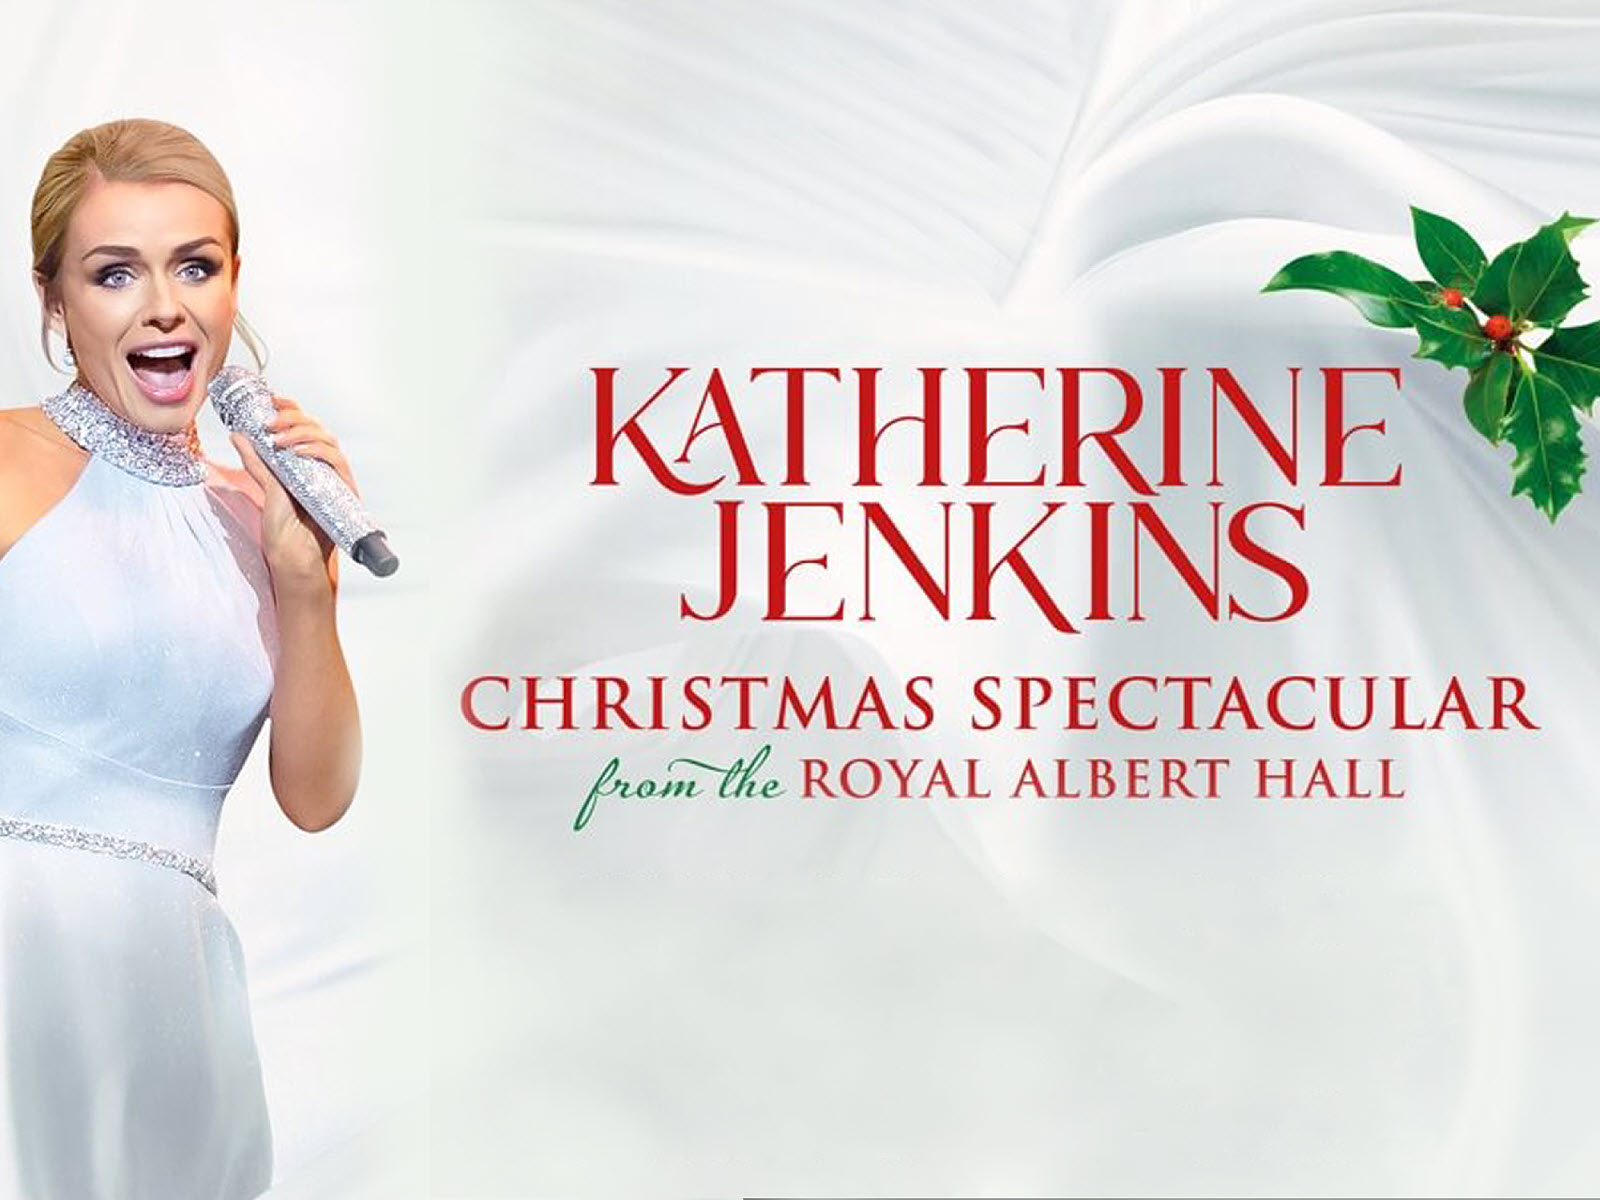 This Christmas, Katherine Jenkins OBE returns to her all-time favourite venue with a unique and unforgettable Christmas musical to bring joy and festive celebrations to cinema audiences around the world...